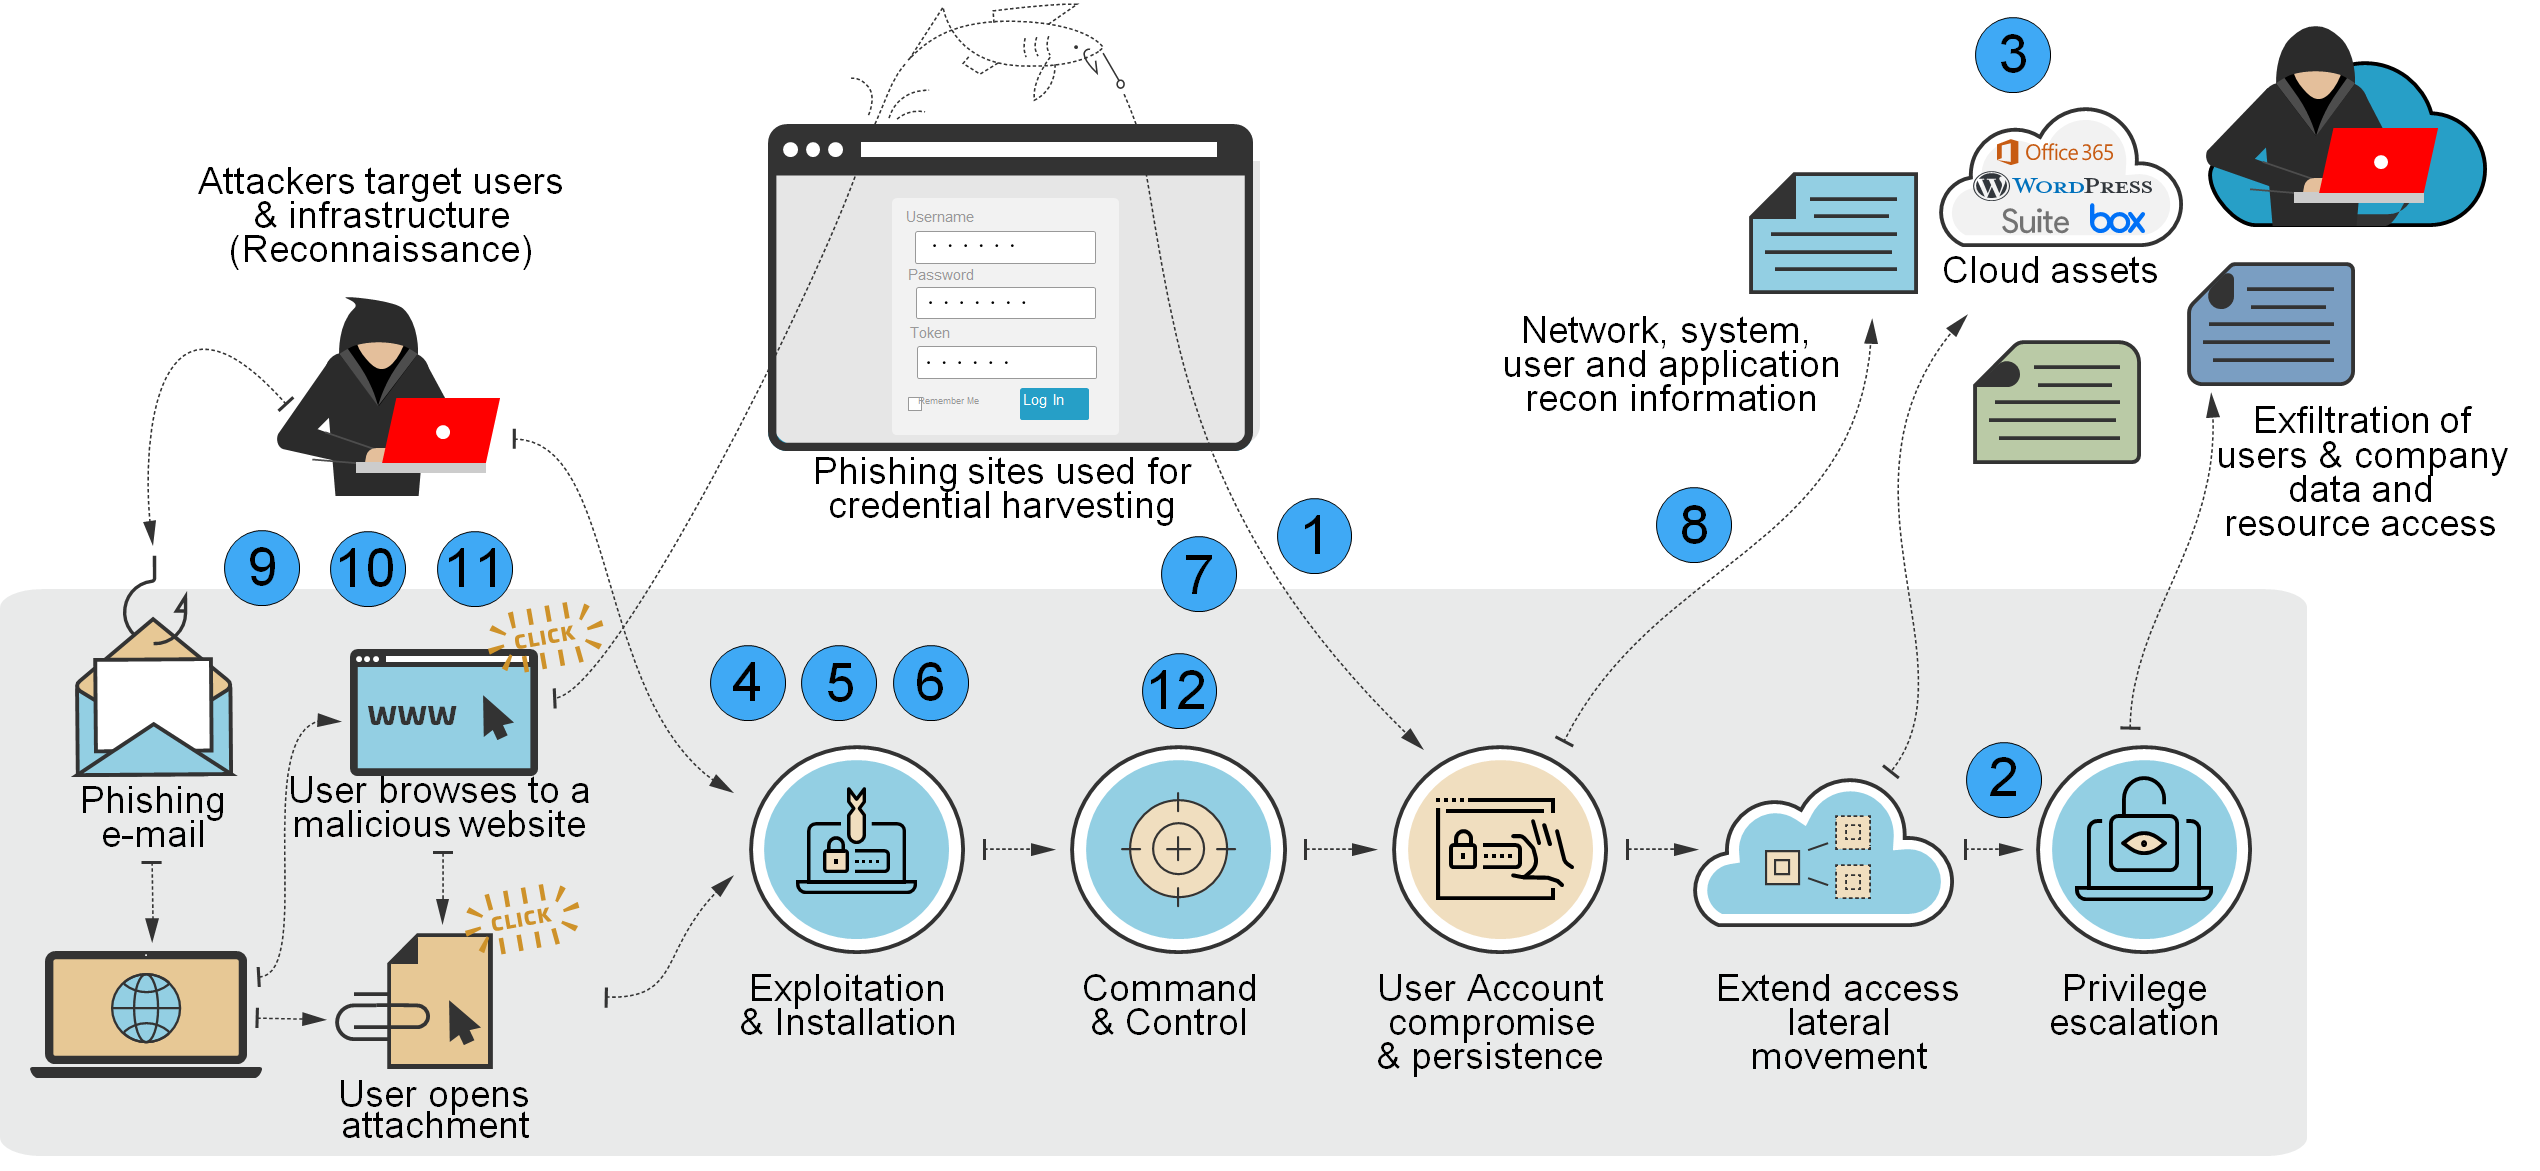 Implementing Foundational Security Controls for Every Office 365 Environment